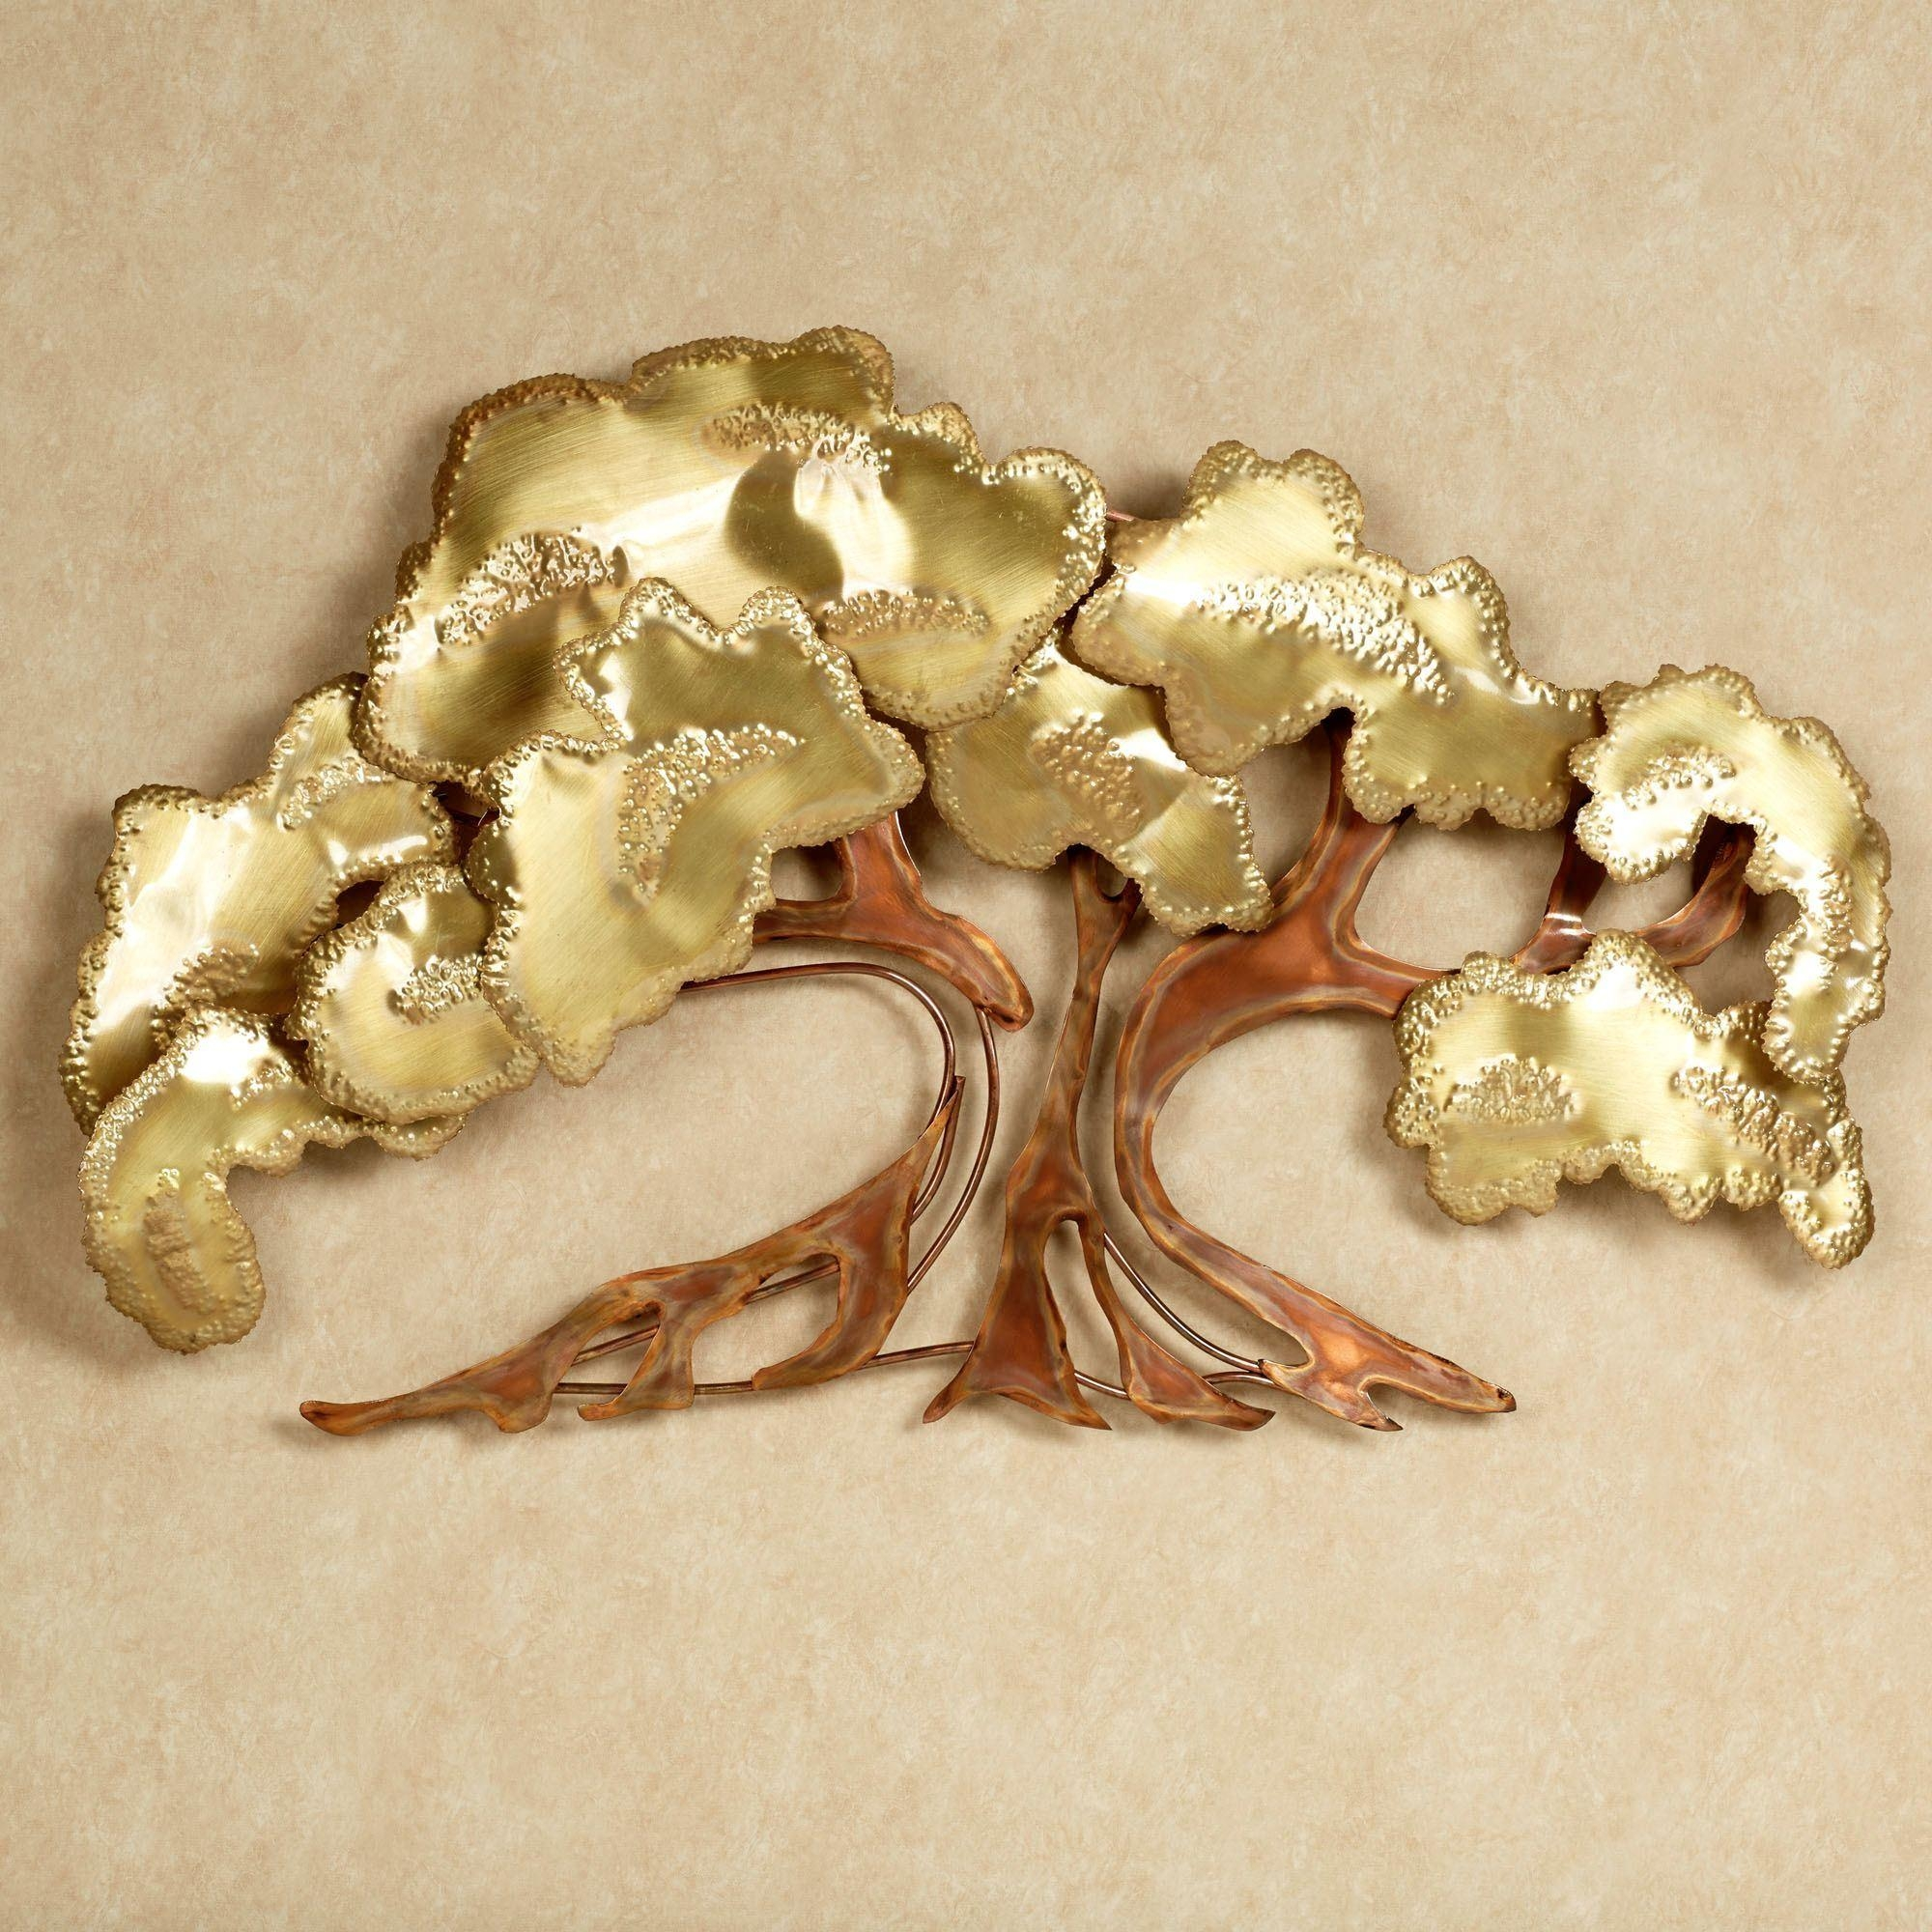 Zen Tree Metal Wall Sculpture intended for Metal Tree Wall Art Sculpture